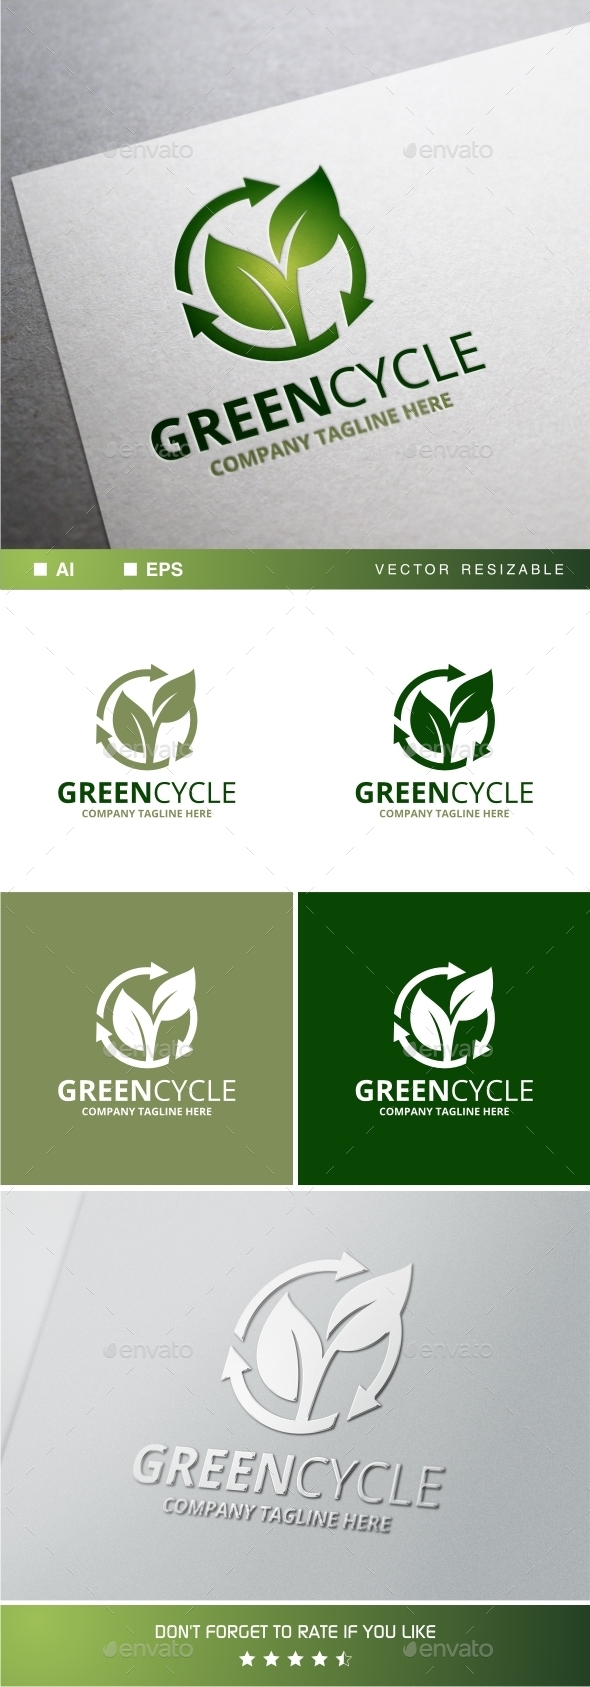 GraphicRiver Greencycle Logo Template 11788307